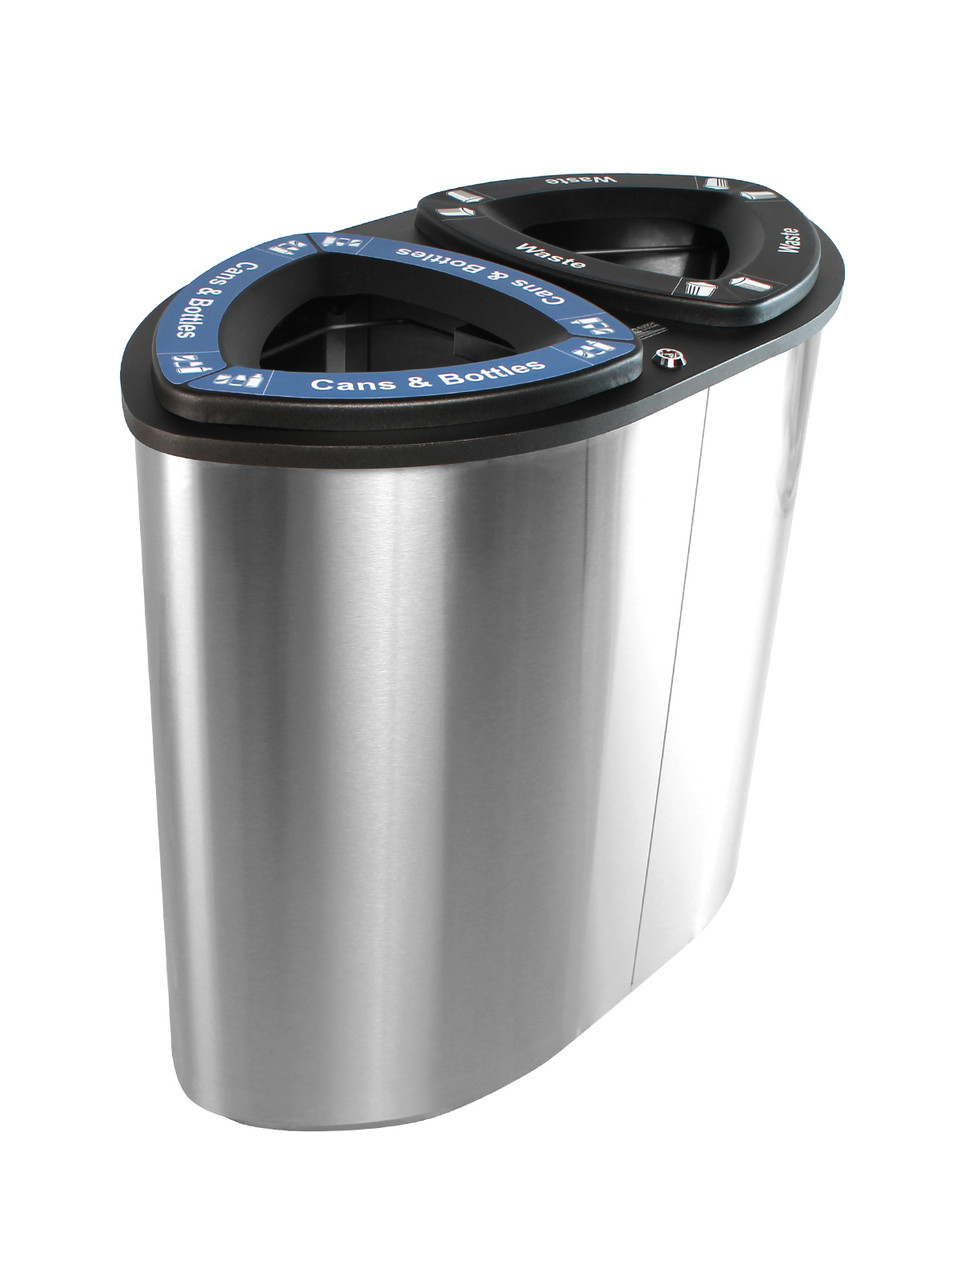 Stainless Steel Recycling Bins 2 Stream 52 Gallon Boka Stainless Steel Recycling Bin Boka2 Ss